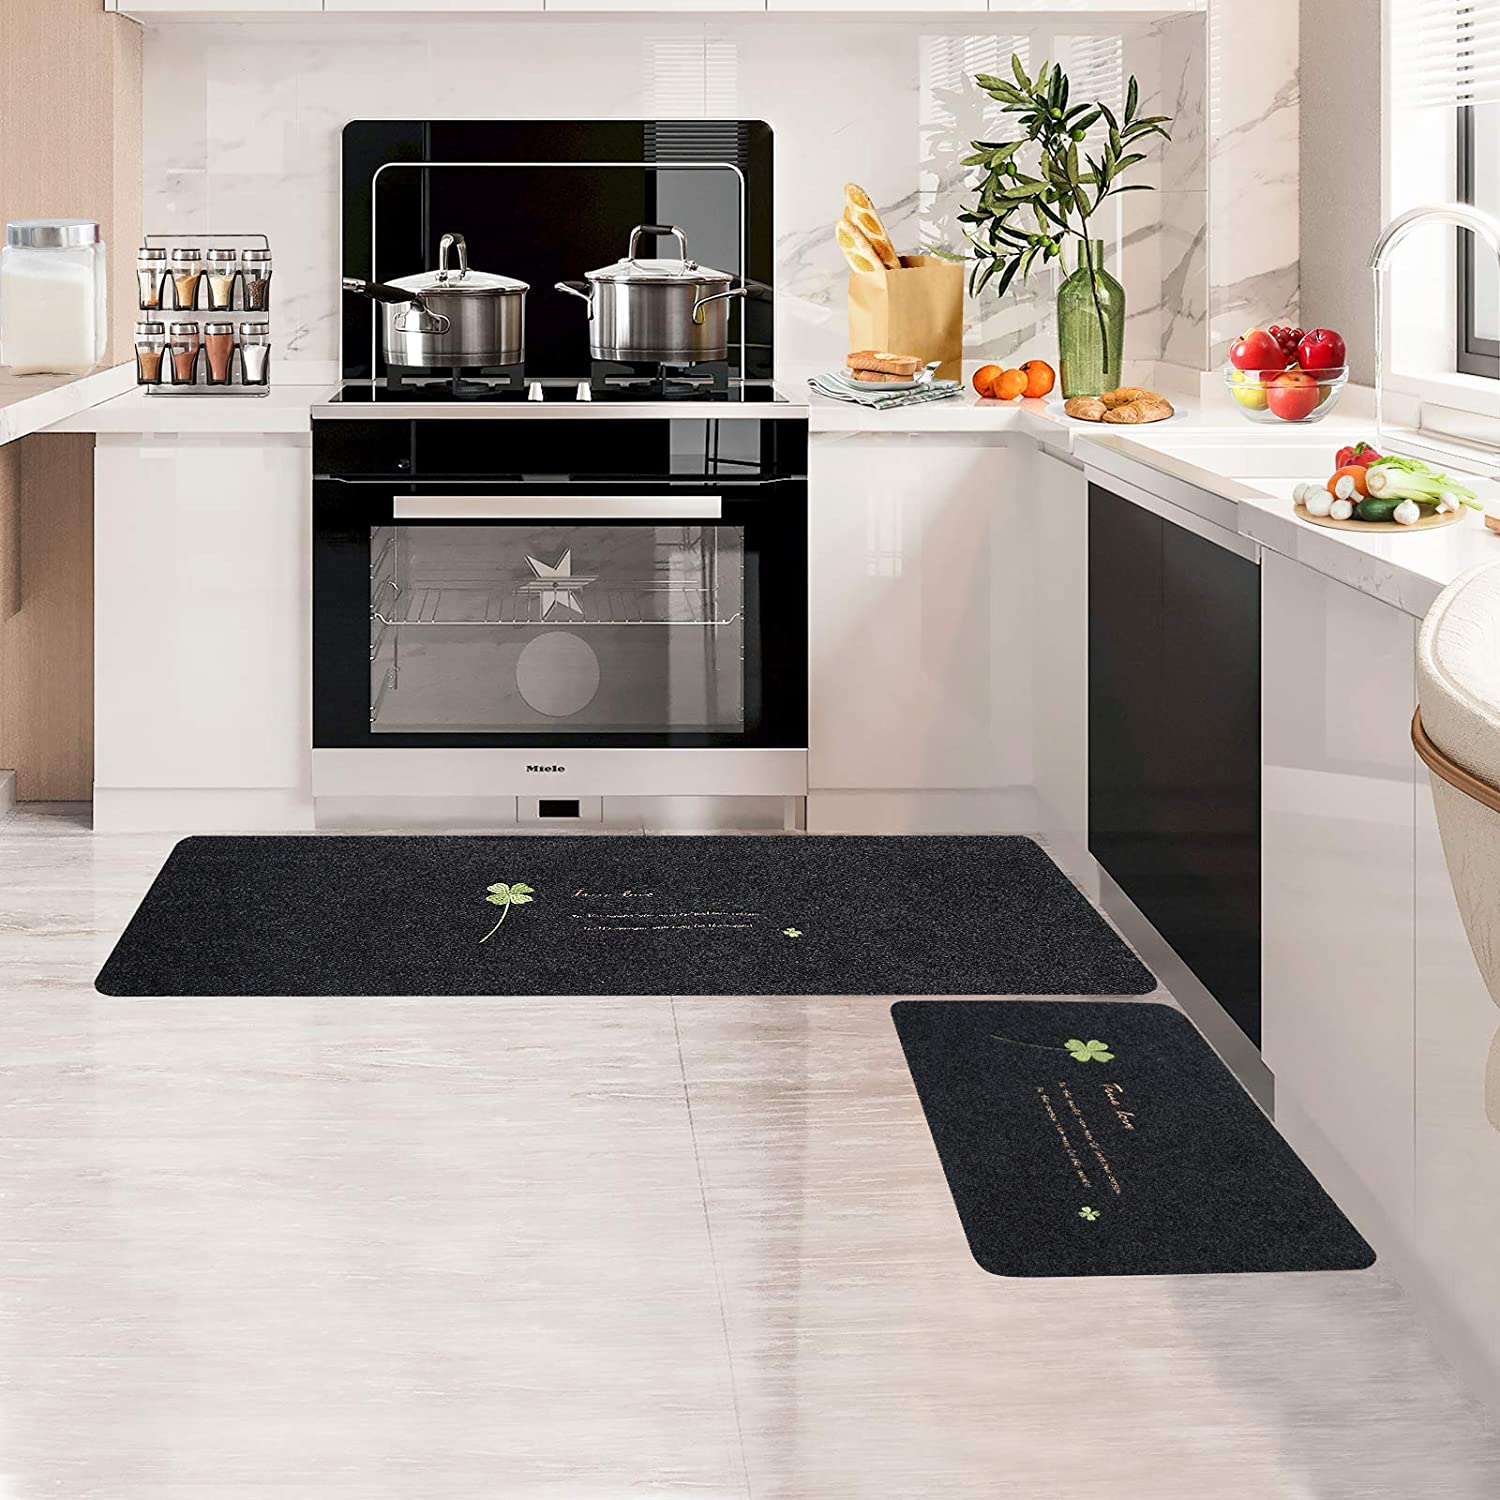 Kitchen Rugs Set 2 Pieces Cushioned Anti-Fatigue Kitchen Rug and Mat,Waterproof Non-Slip Washable,Ergonomic Comfort Foam Rug for Kitchen, Floor Home, Office, Sink, Laundry (Green)